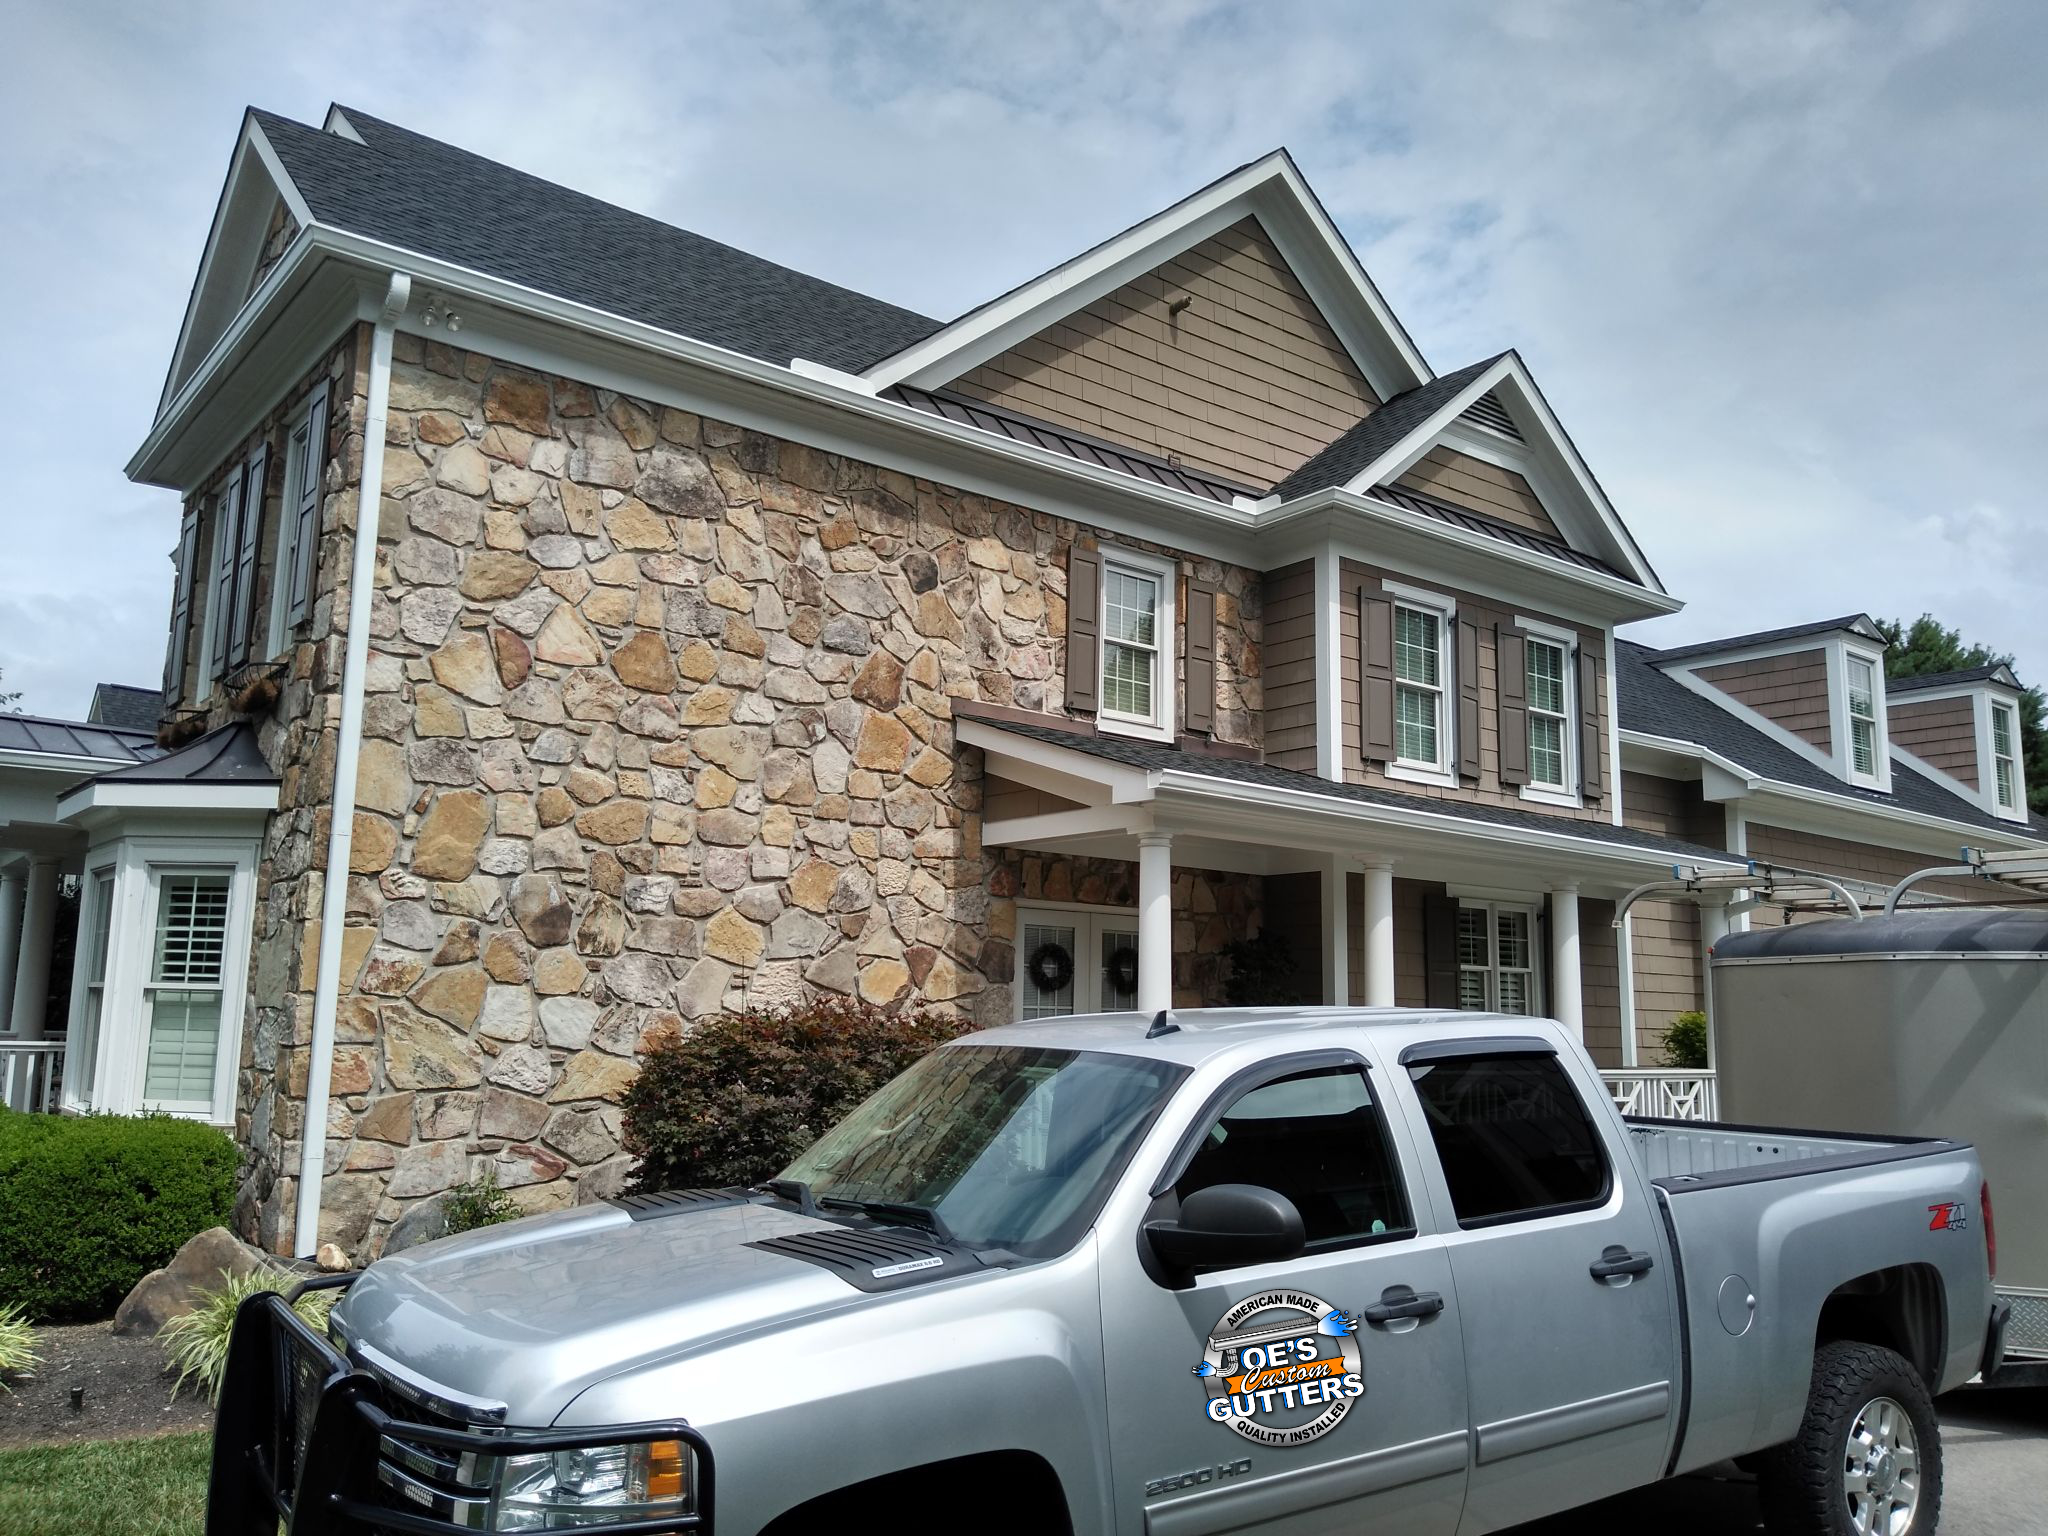 Gutter cleaning in Knoxville TN